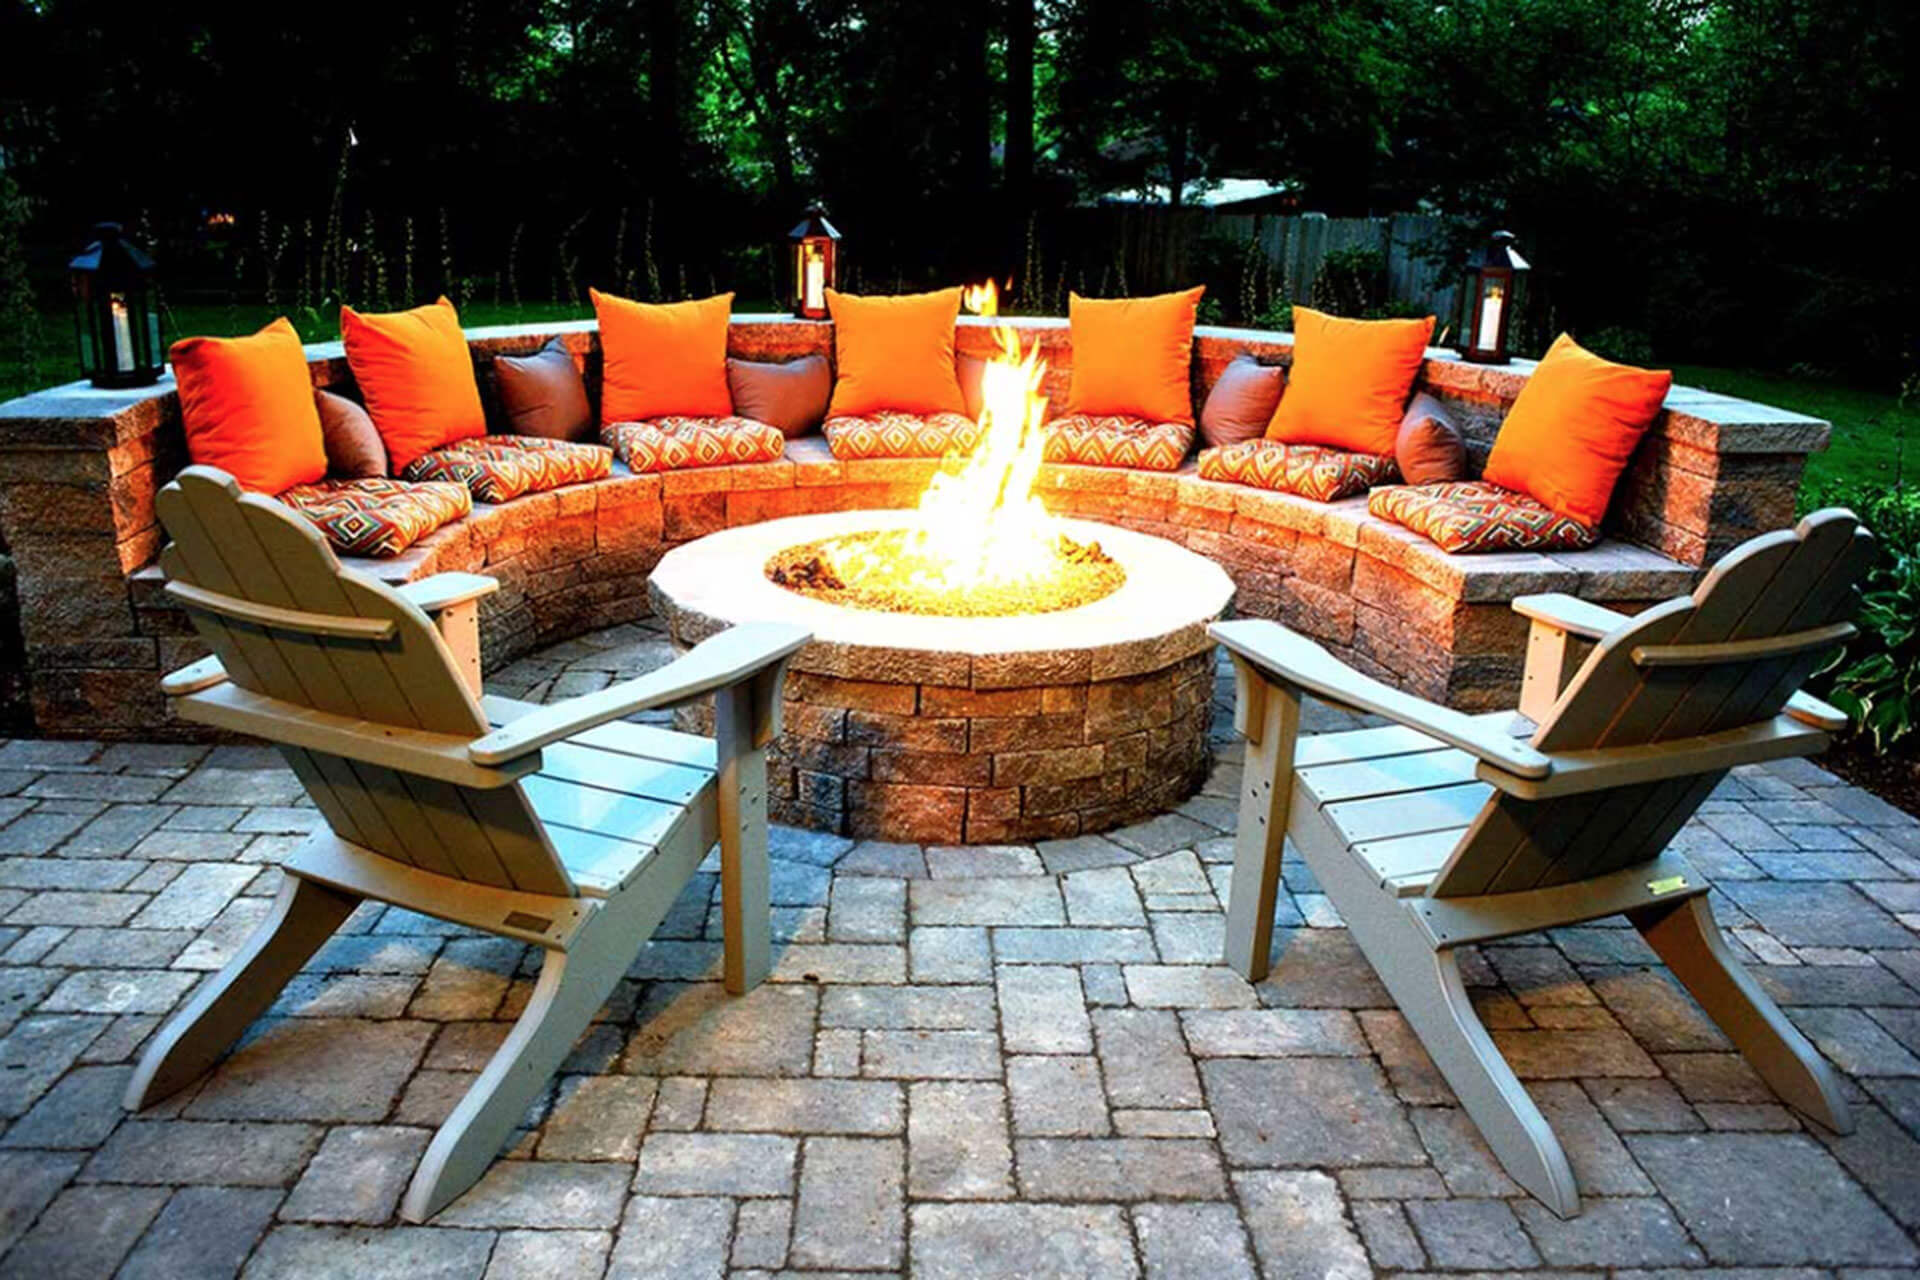 Orange Glowing Round Firepit Area Idea